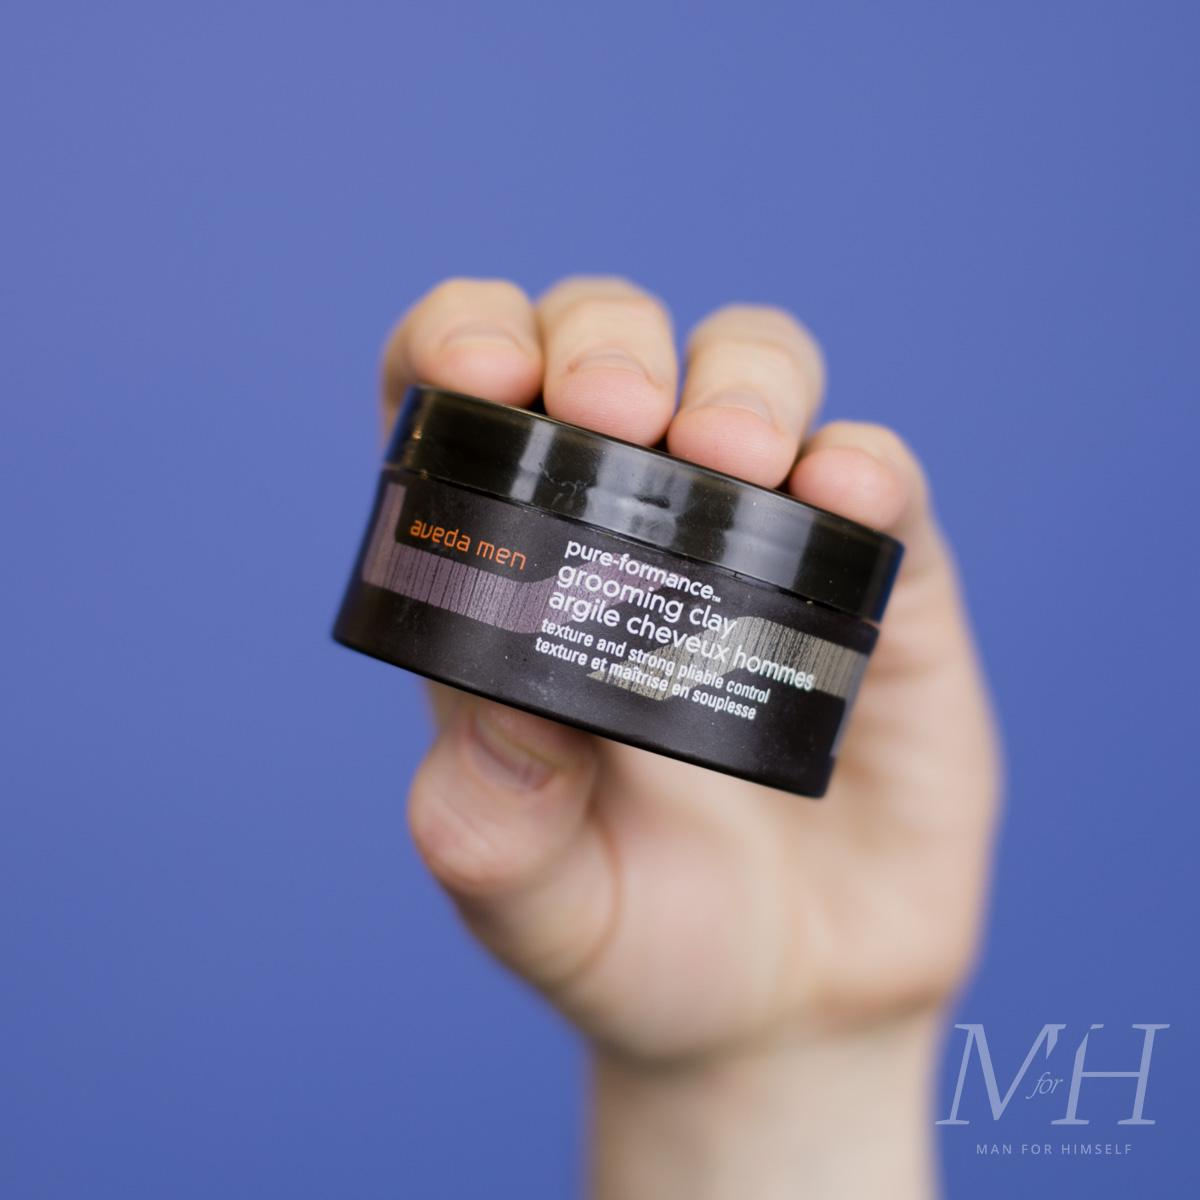 aveda-grooming-clay-review-products-man-for-himself-3